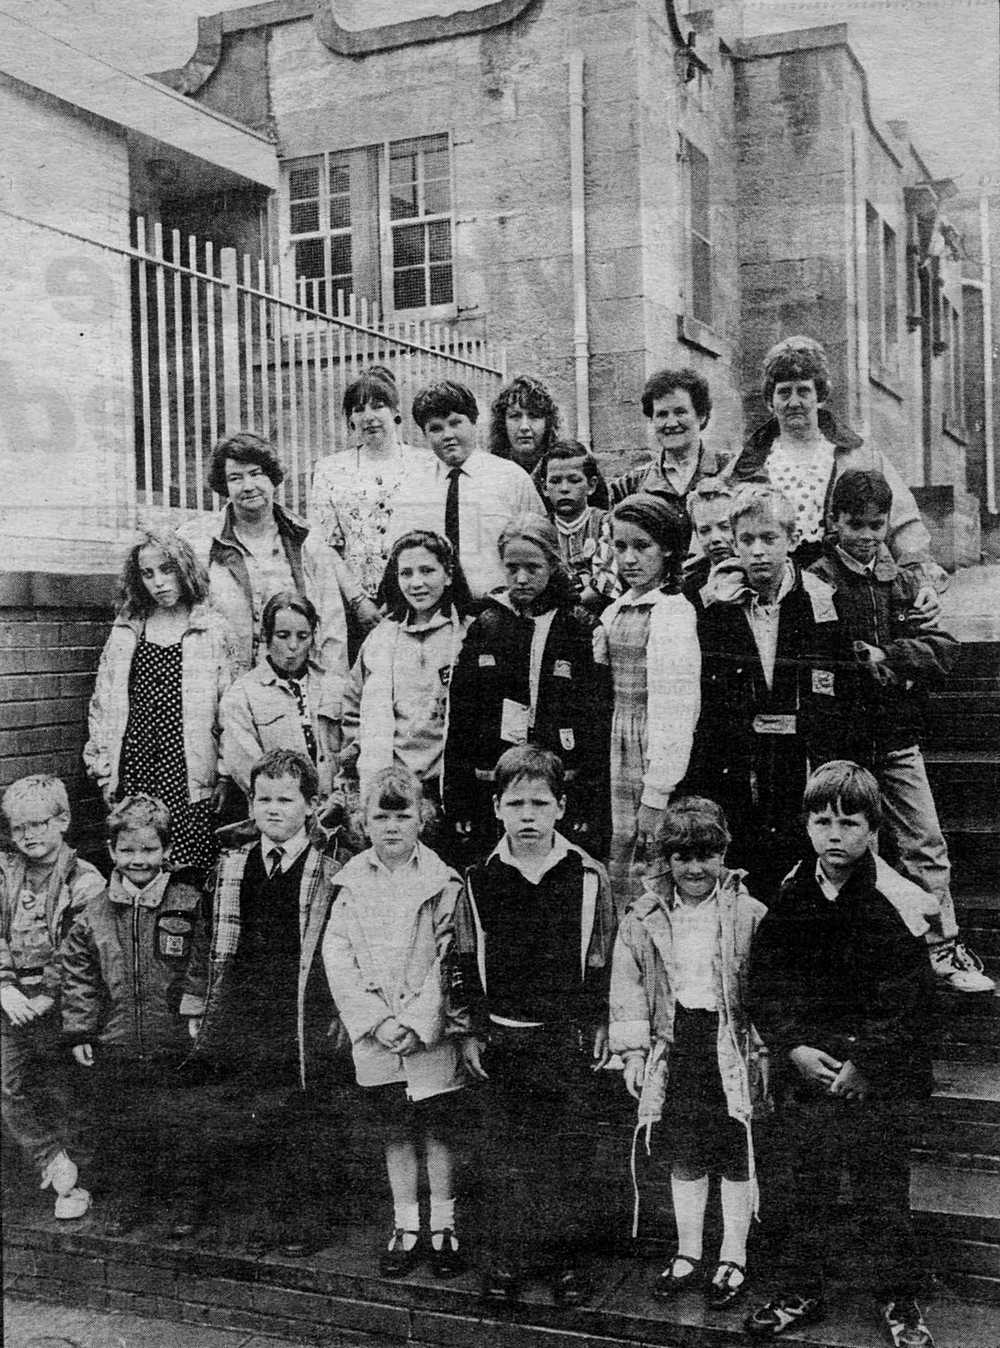 Auchenheath Primary School closing in 1992